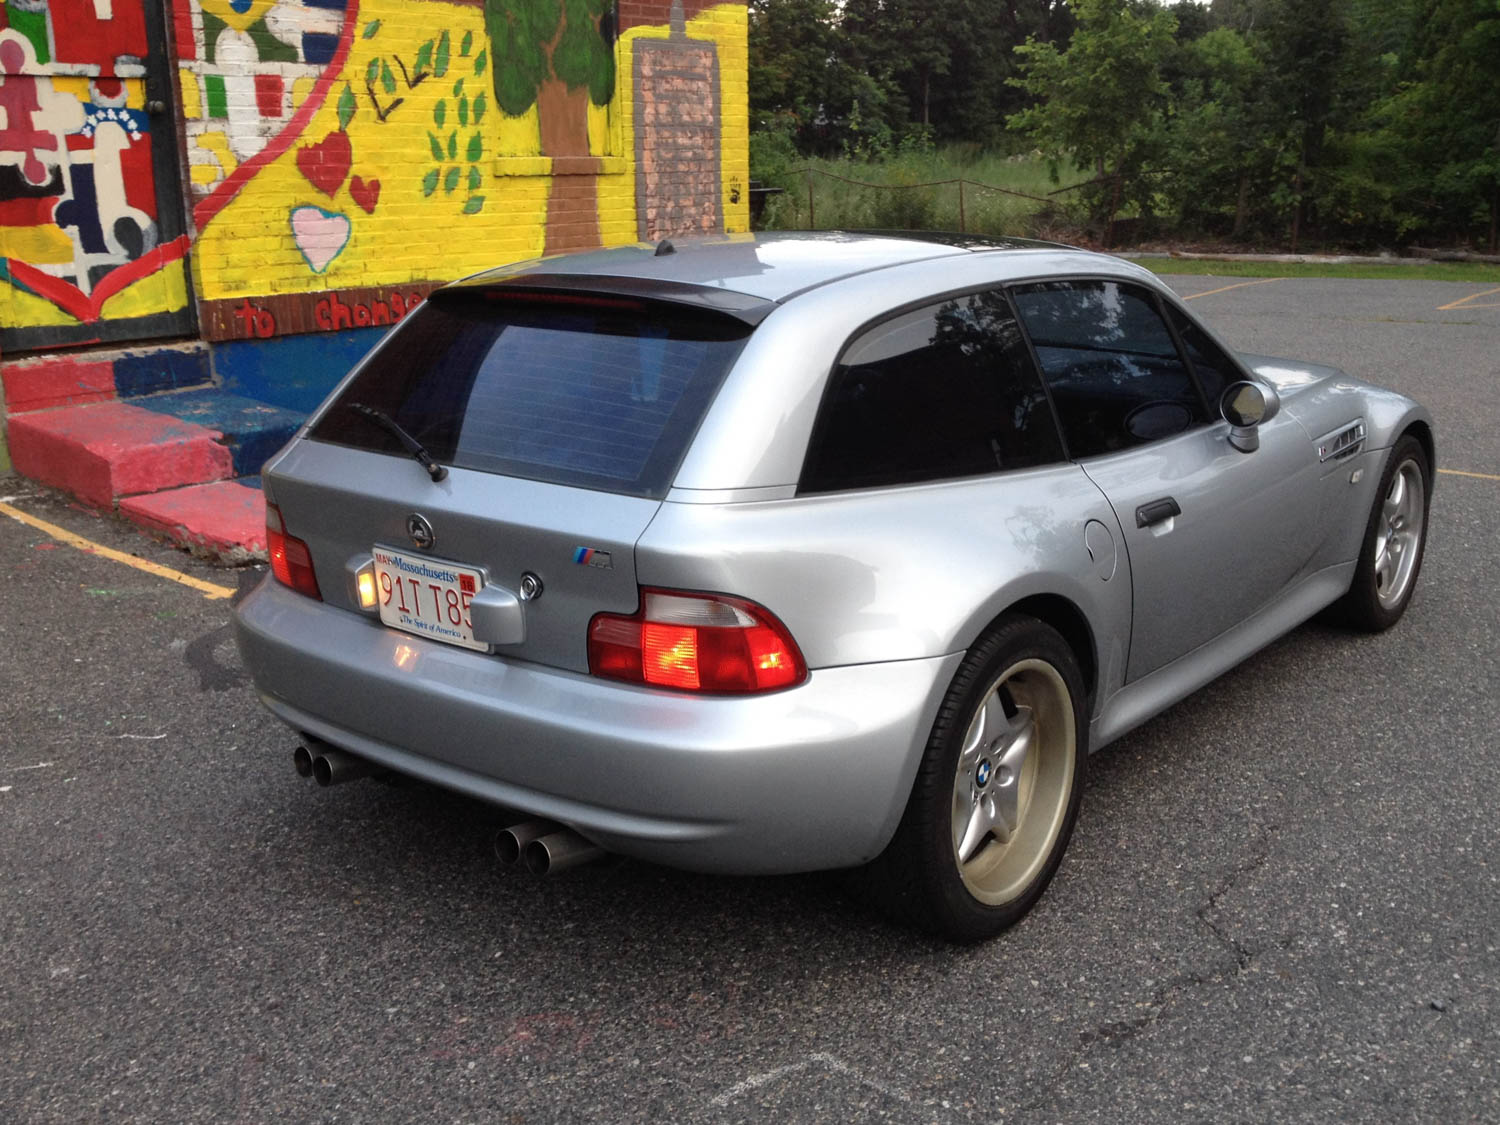 Z3 roadsters are fun, but they don't look like this.